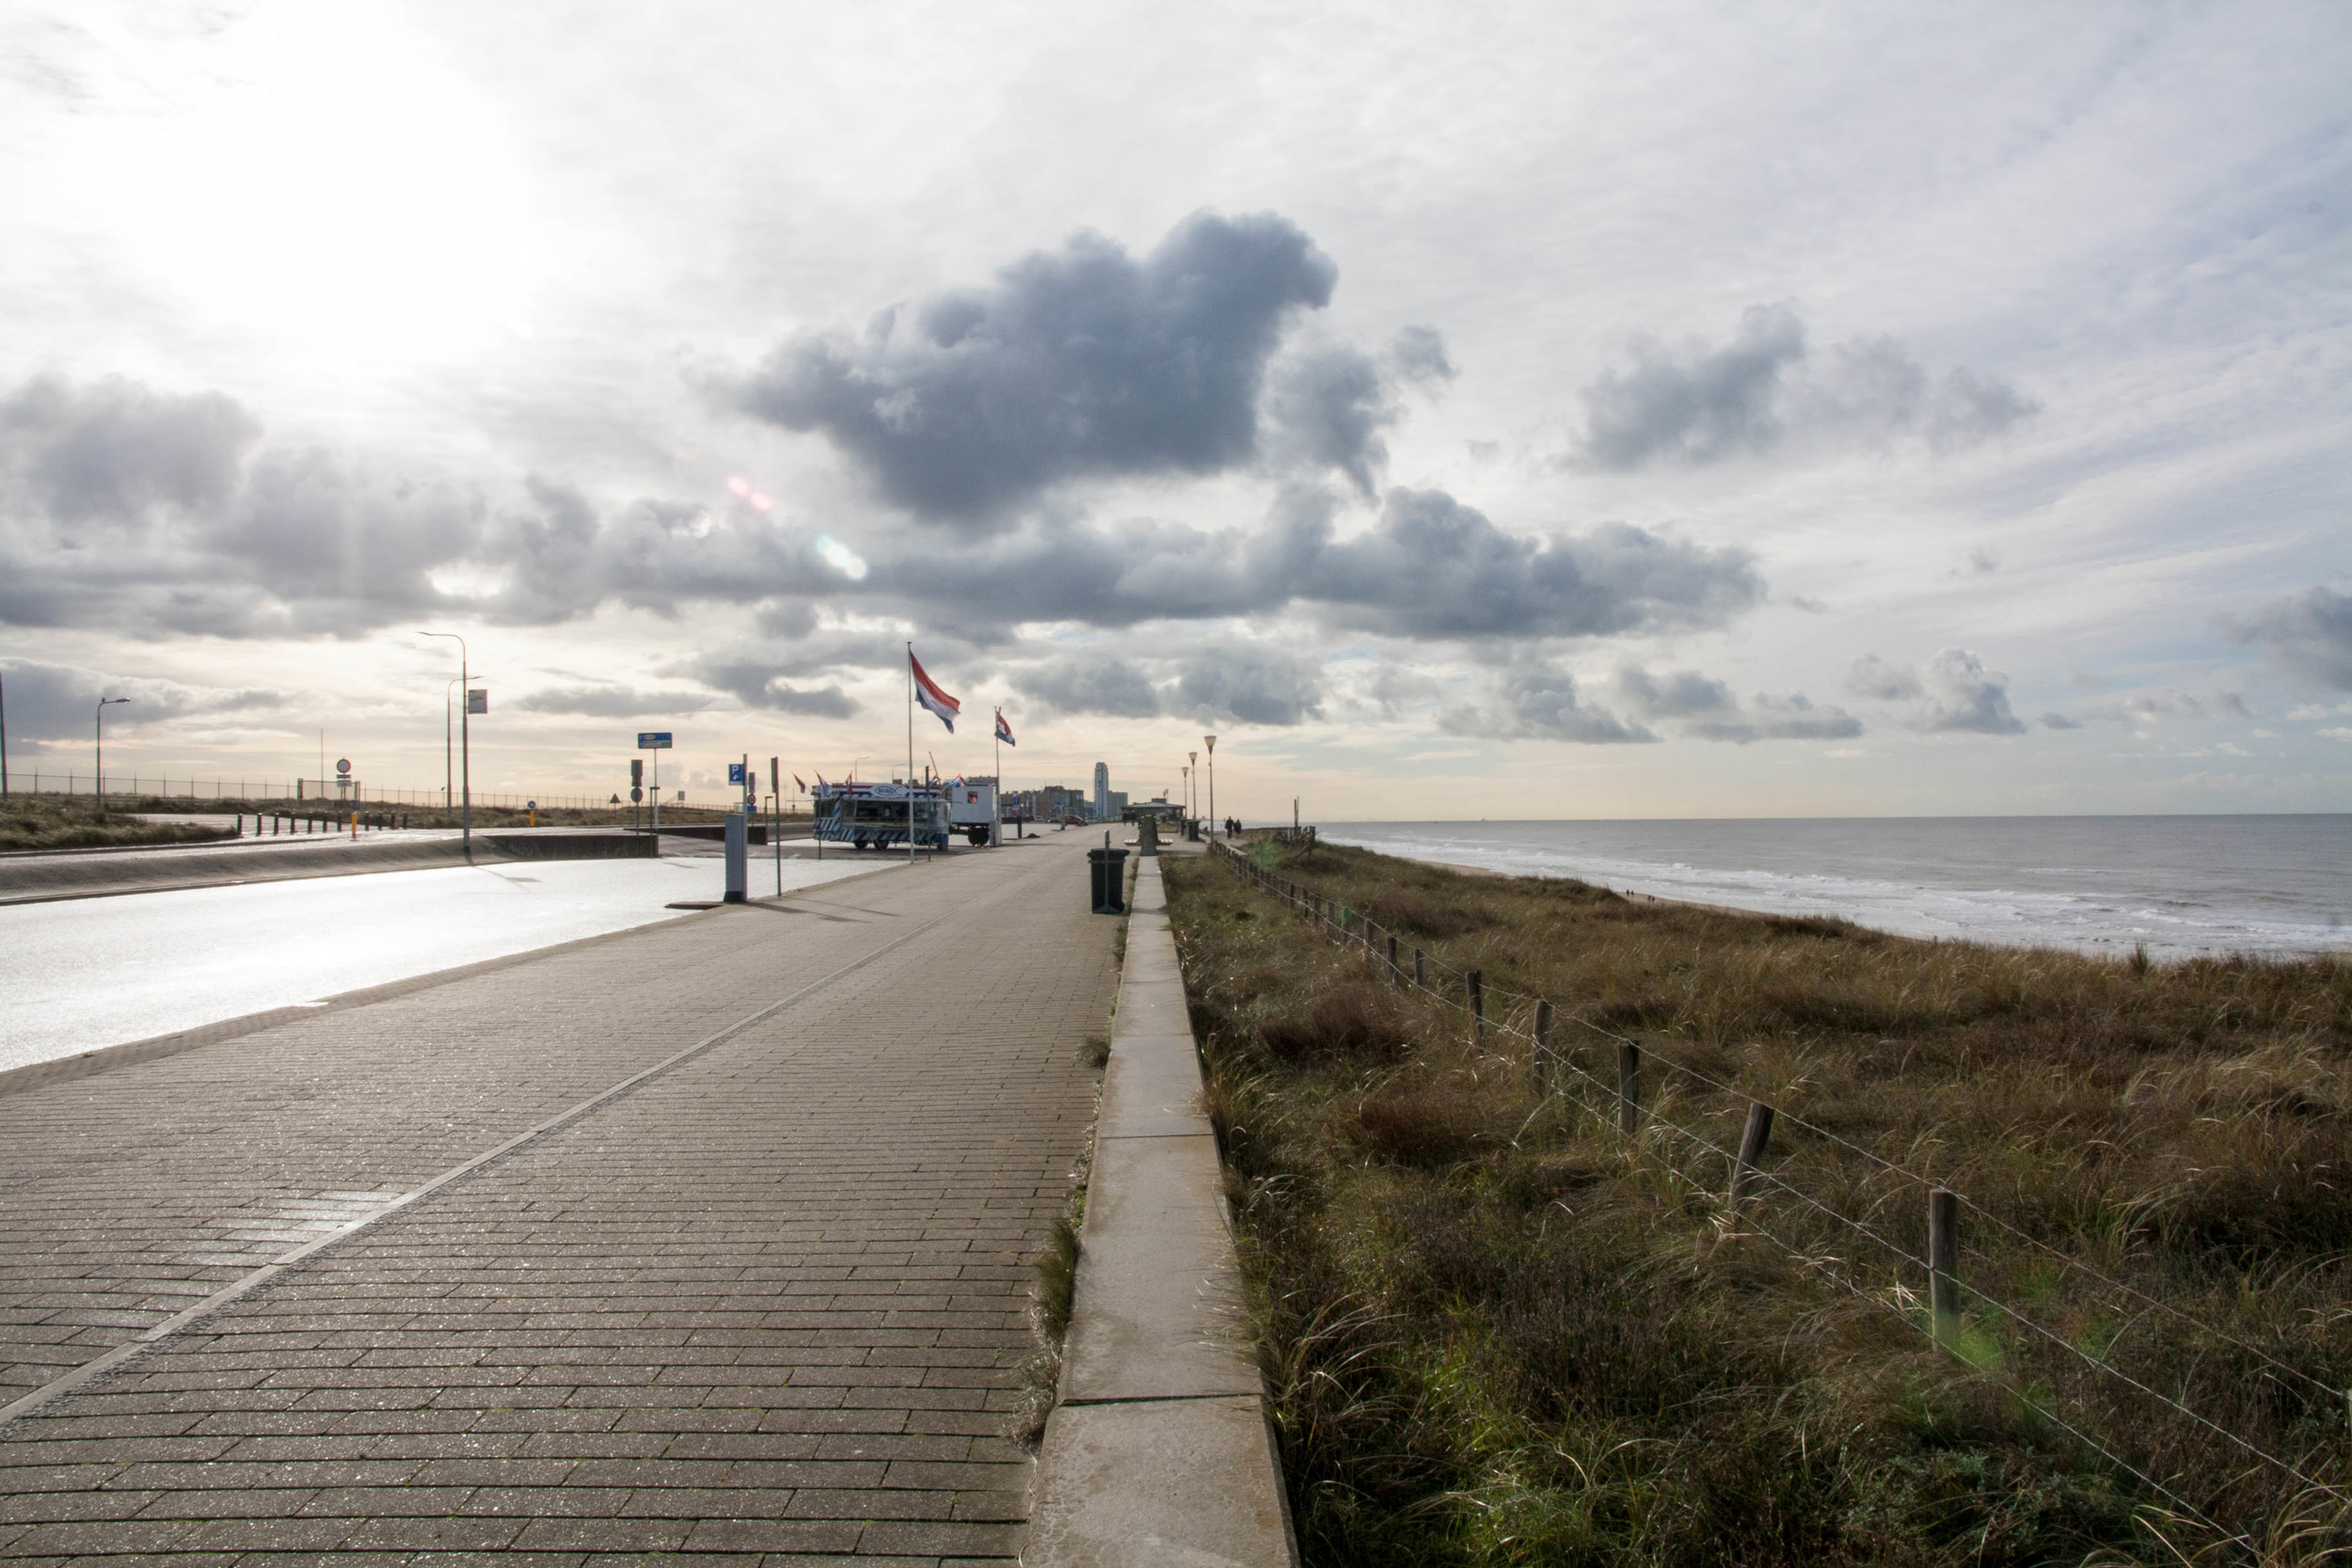 Bicycle pathway and Zandvoort in the distance